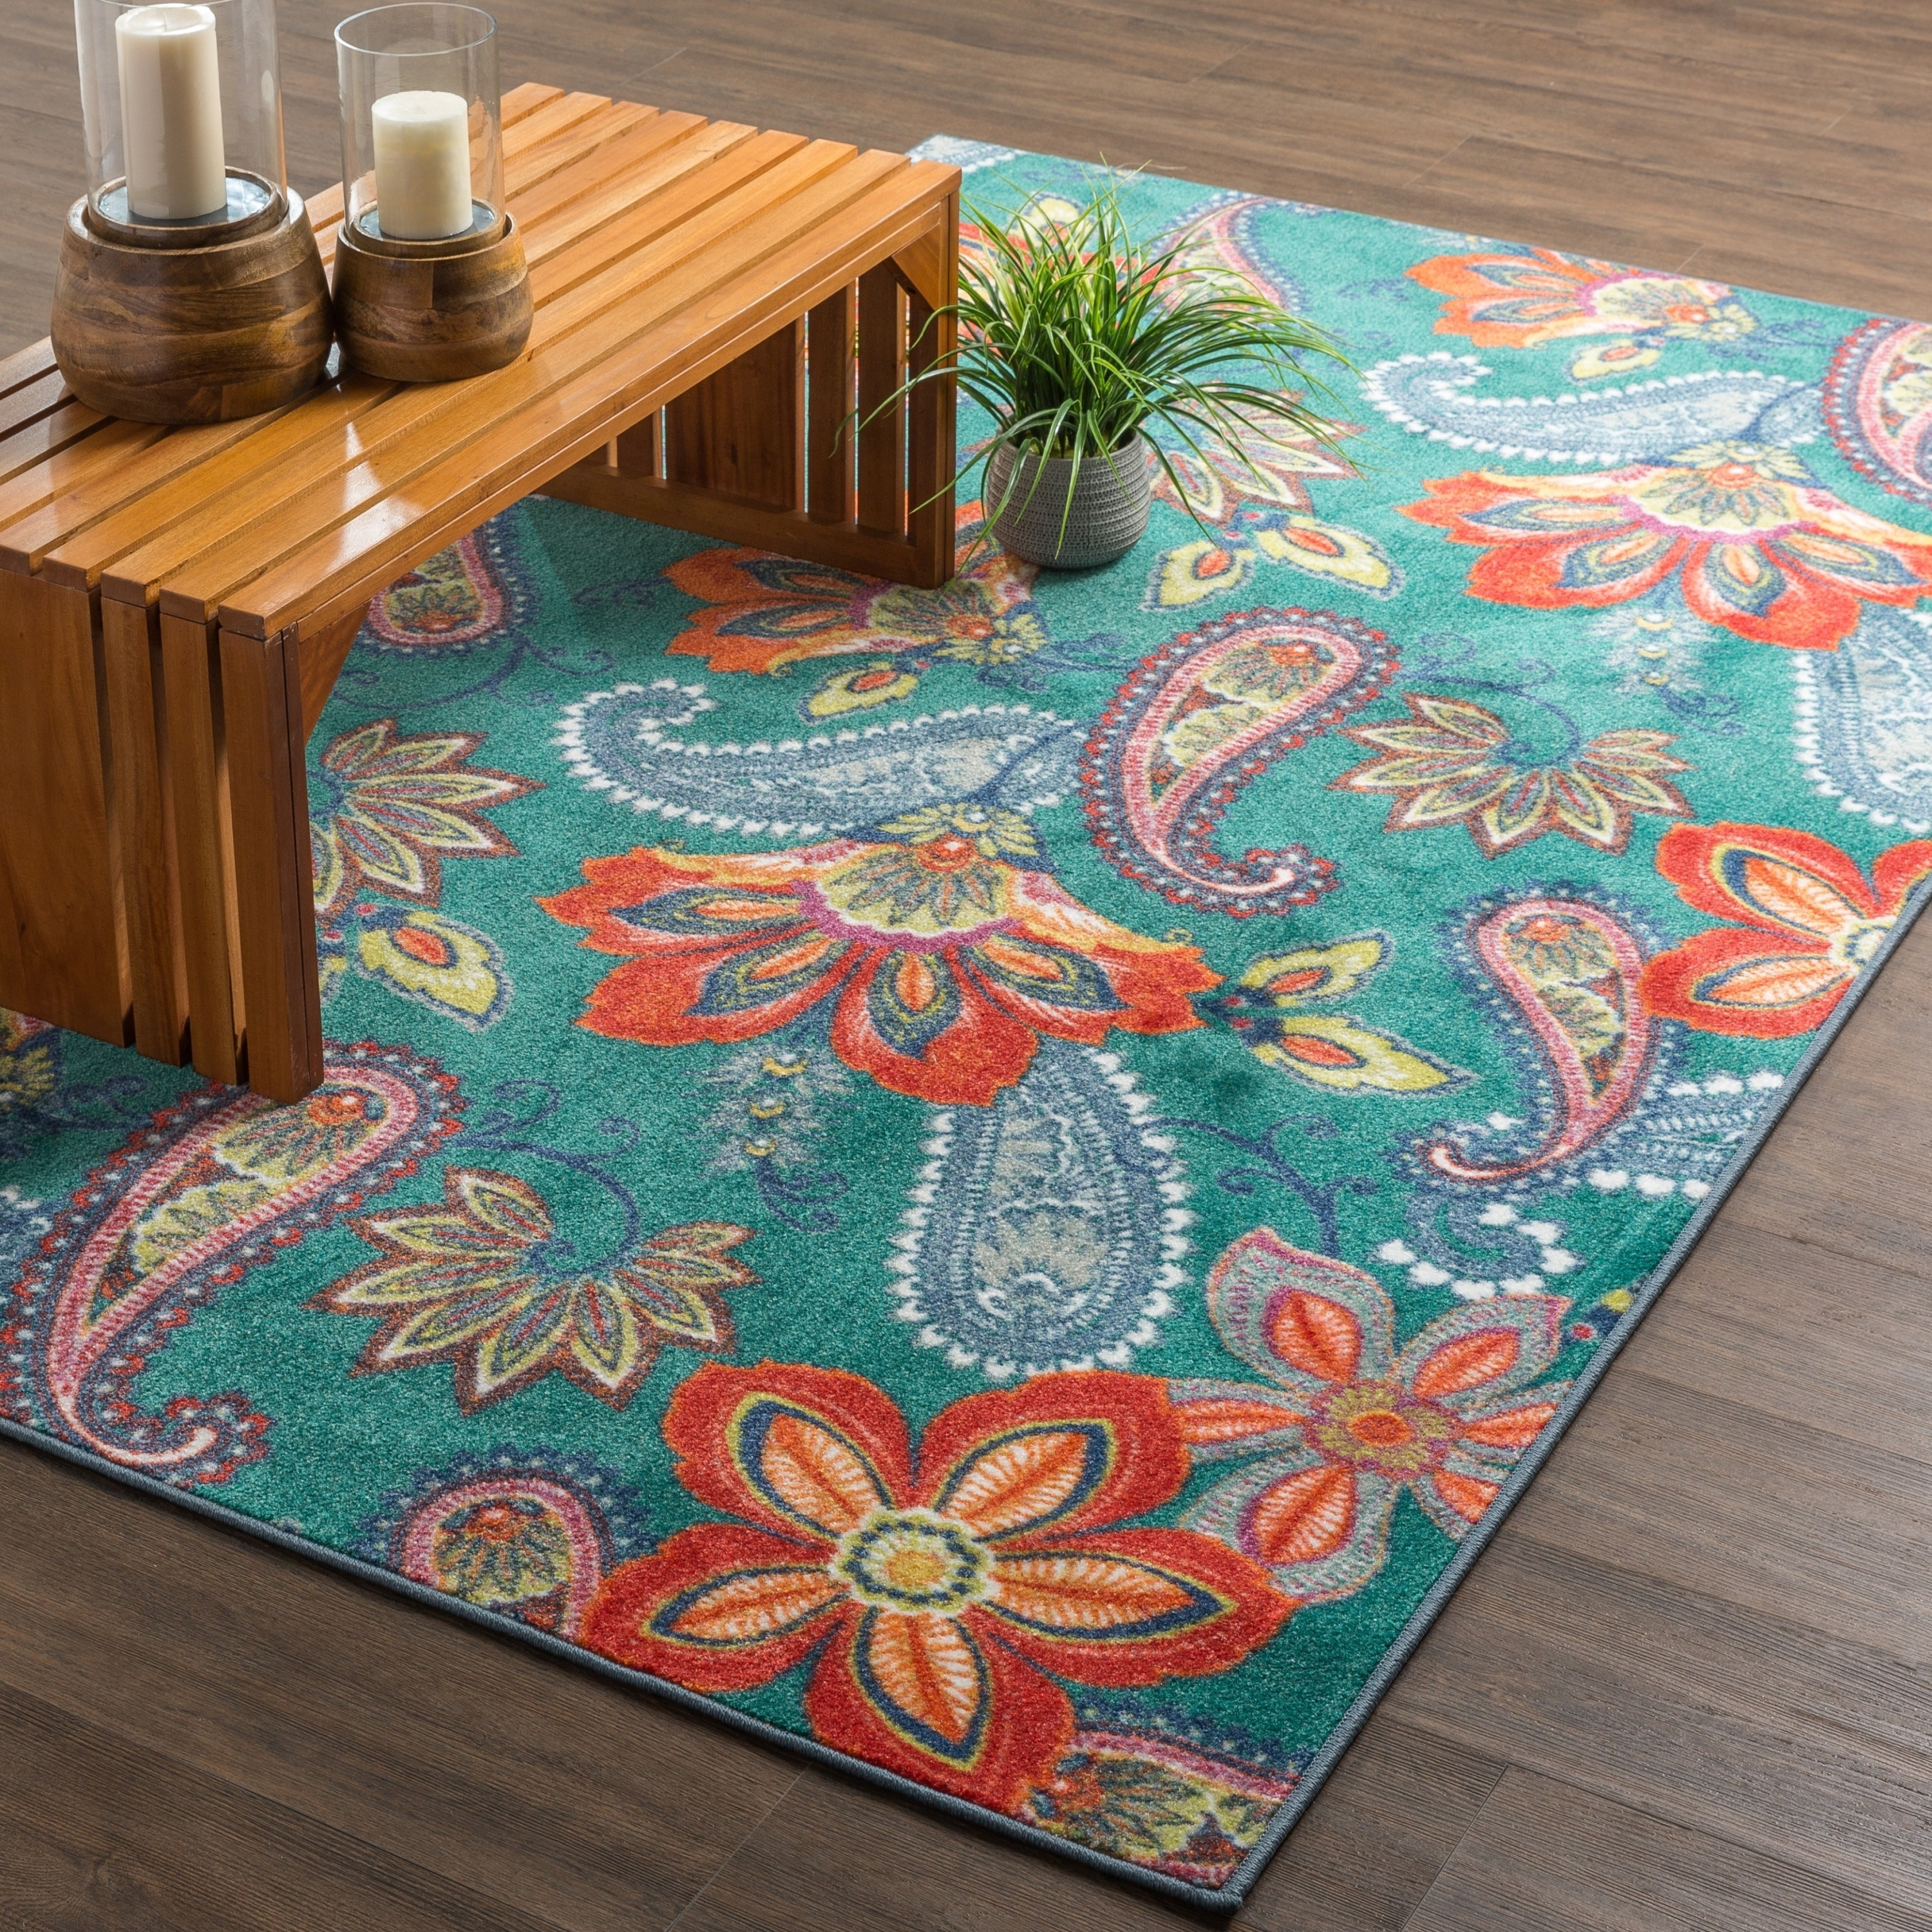 MOHAWK Home New Wave Whinston Area Rug (5x8), Blue, Size ...